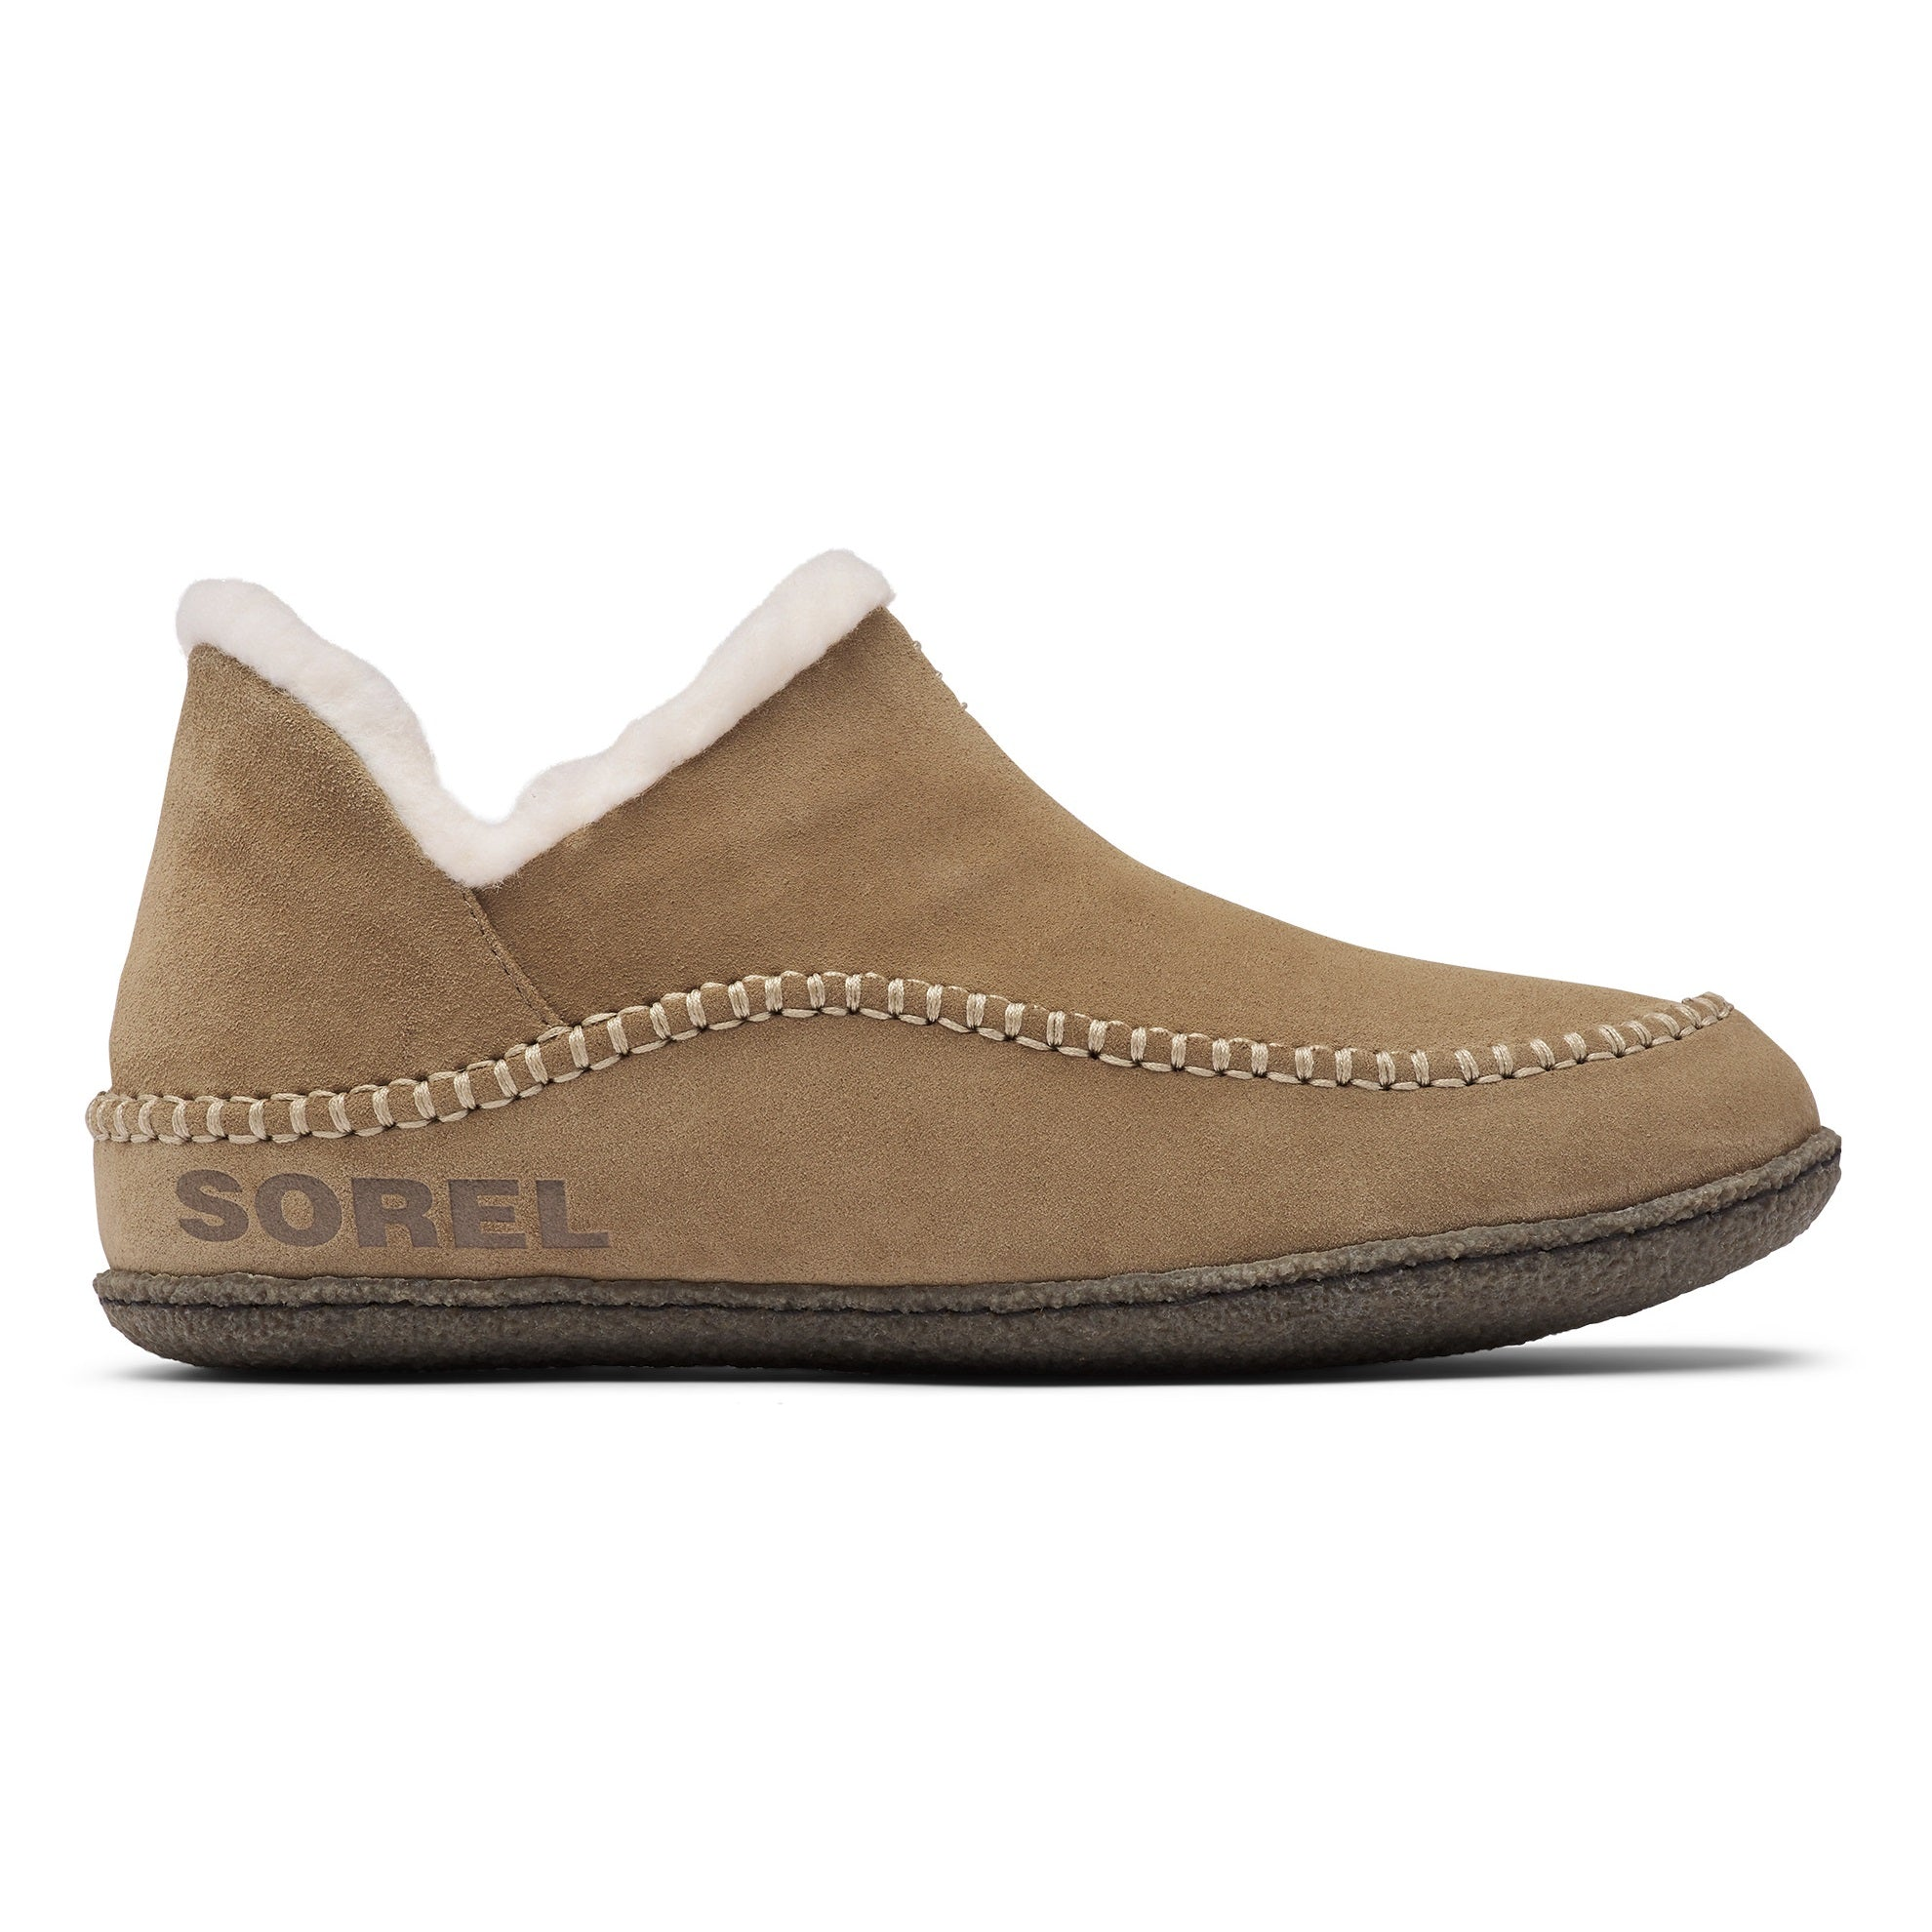 Sorel Men's Manawan II Slipper - Khaki II